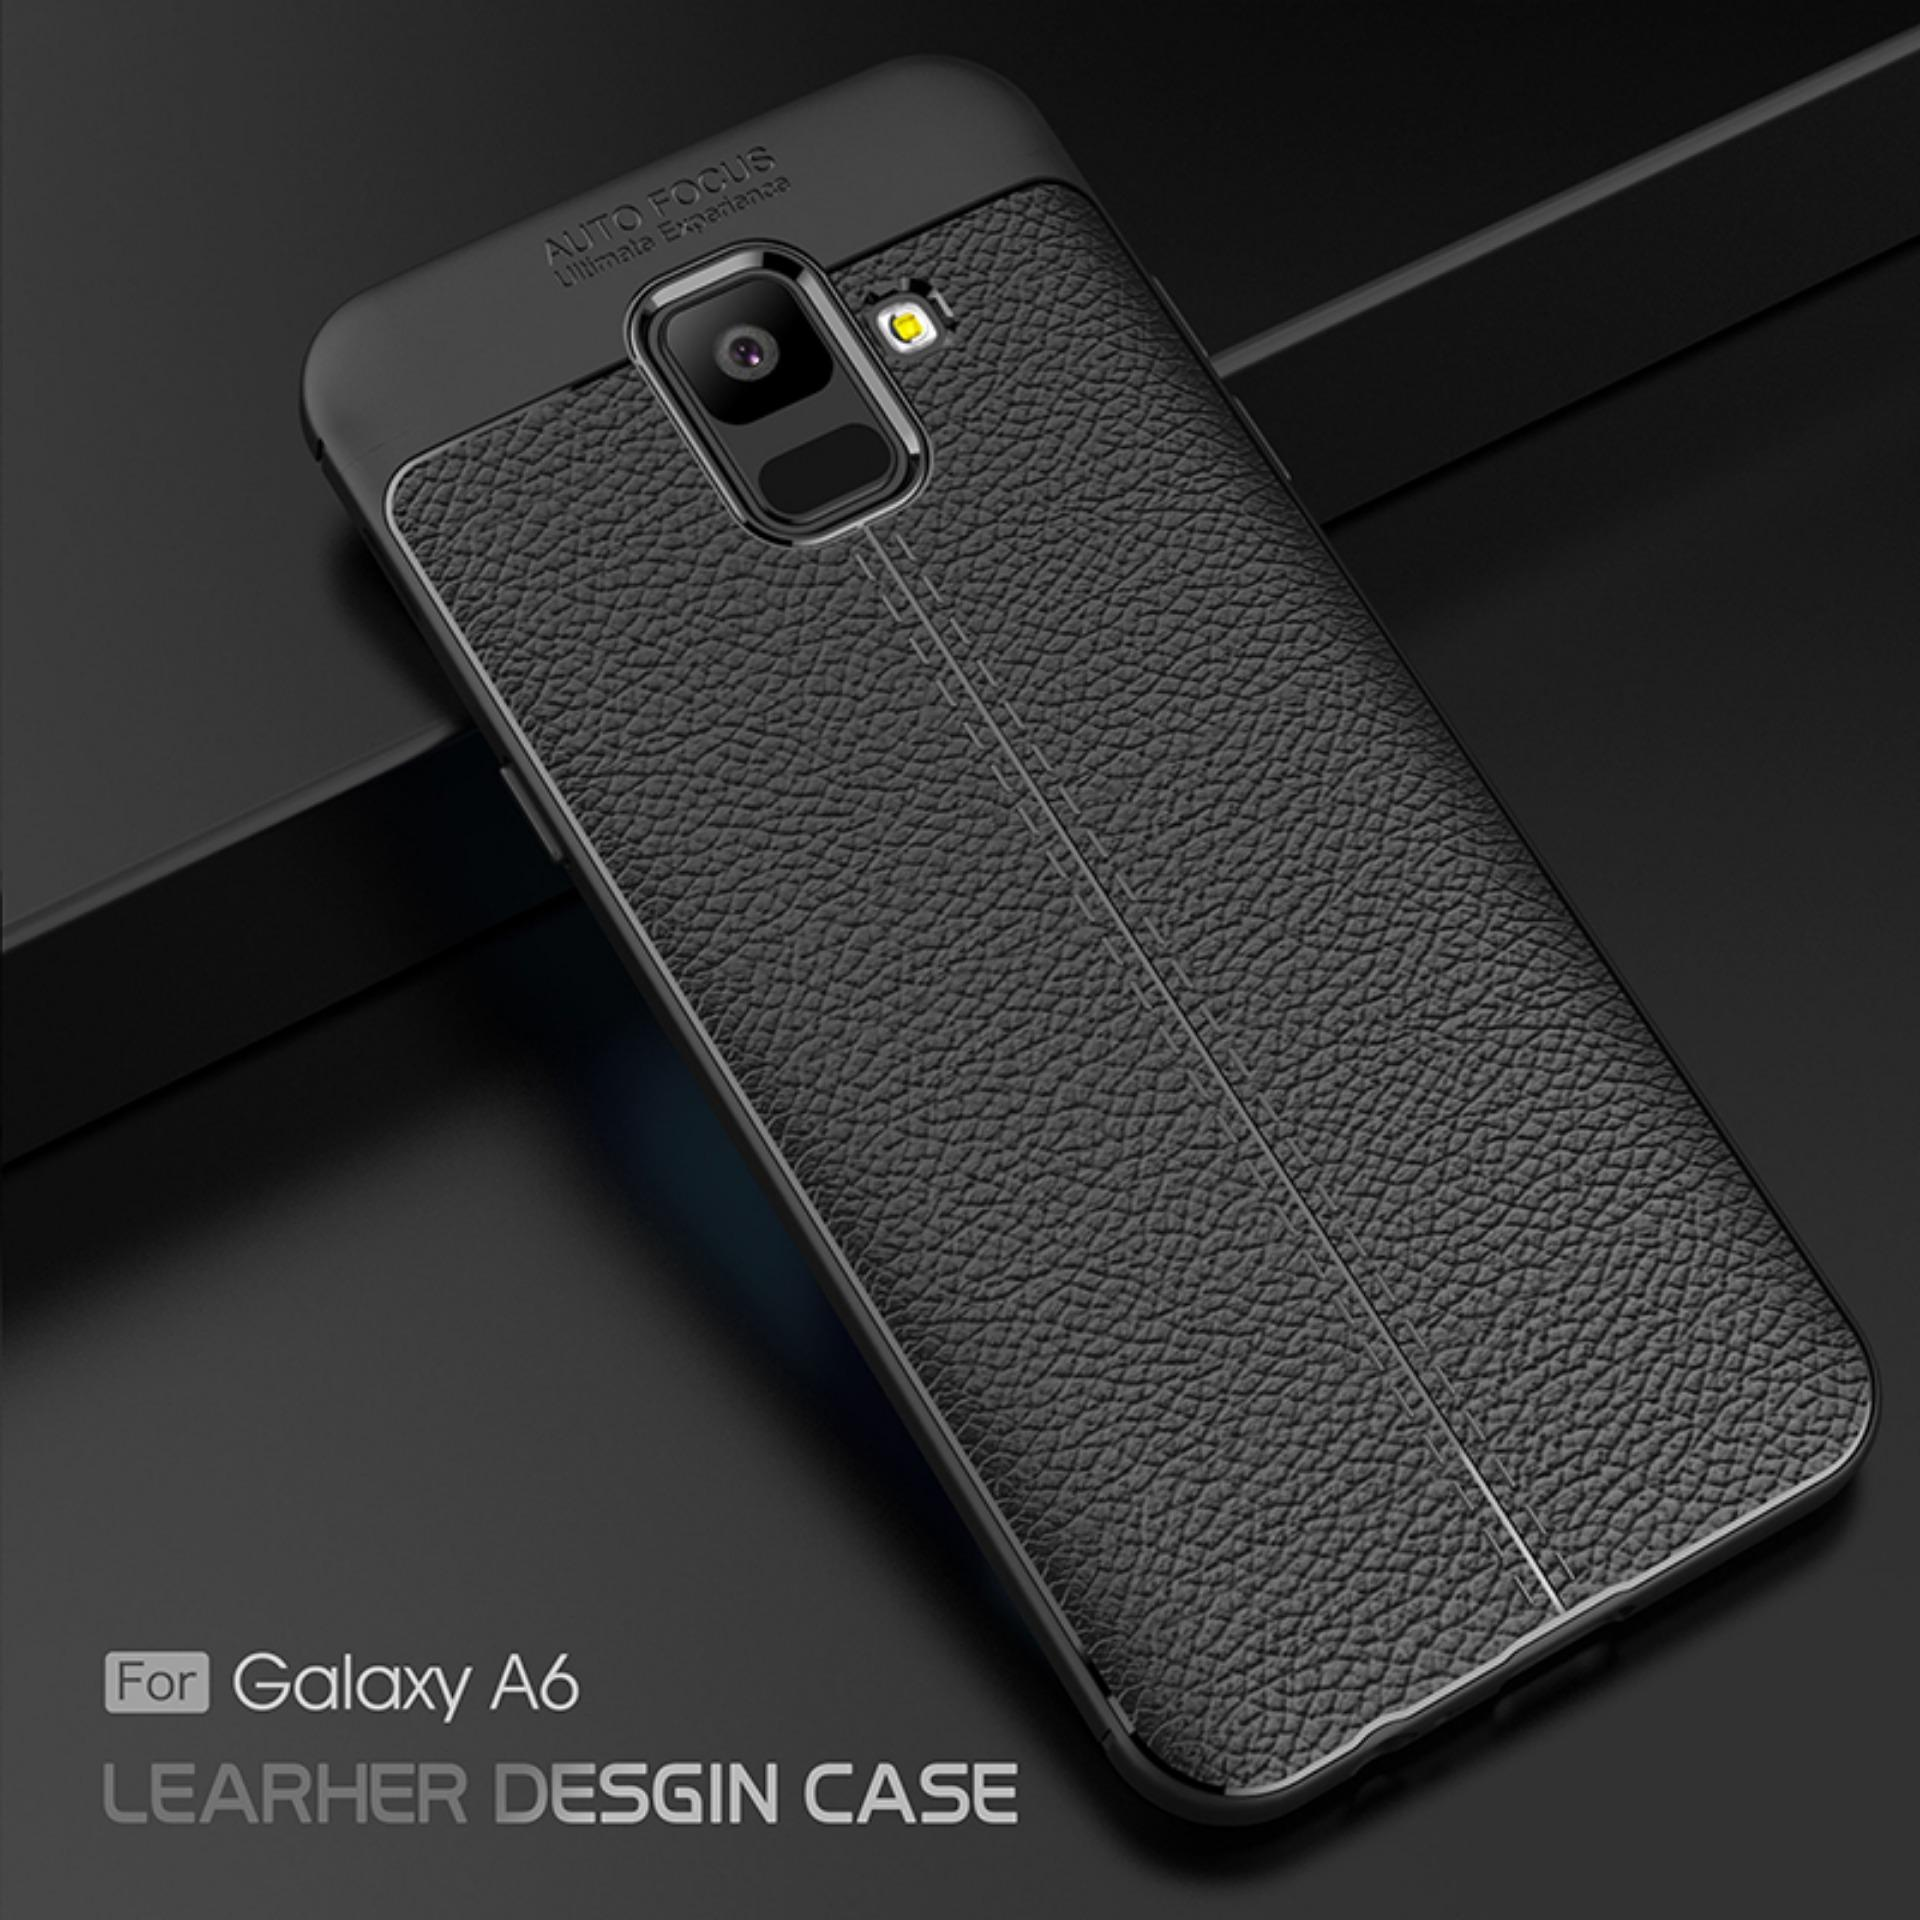 Accessories Hp Premium Ultimate Shockproof Leather Case For Samsung Galaxy A6 2018 - Black - 2 ...